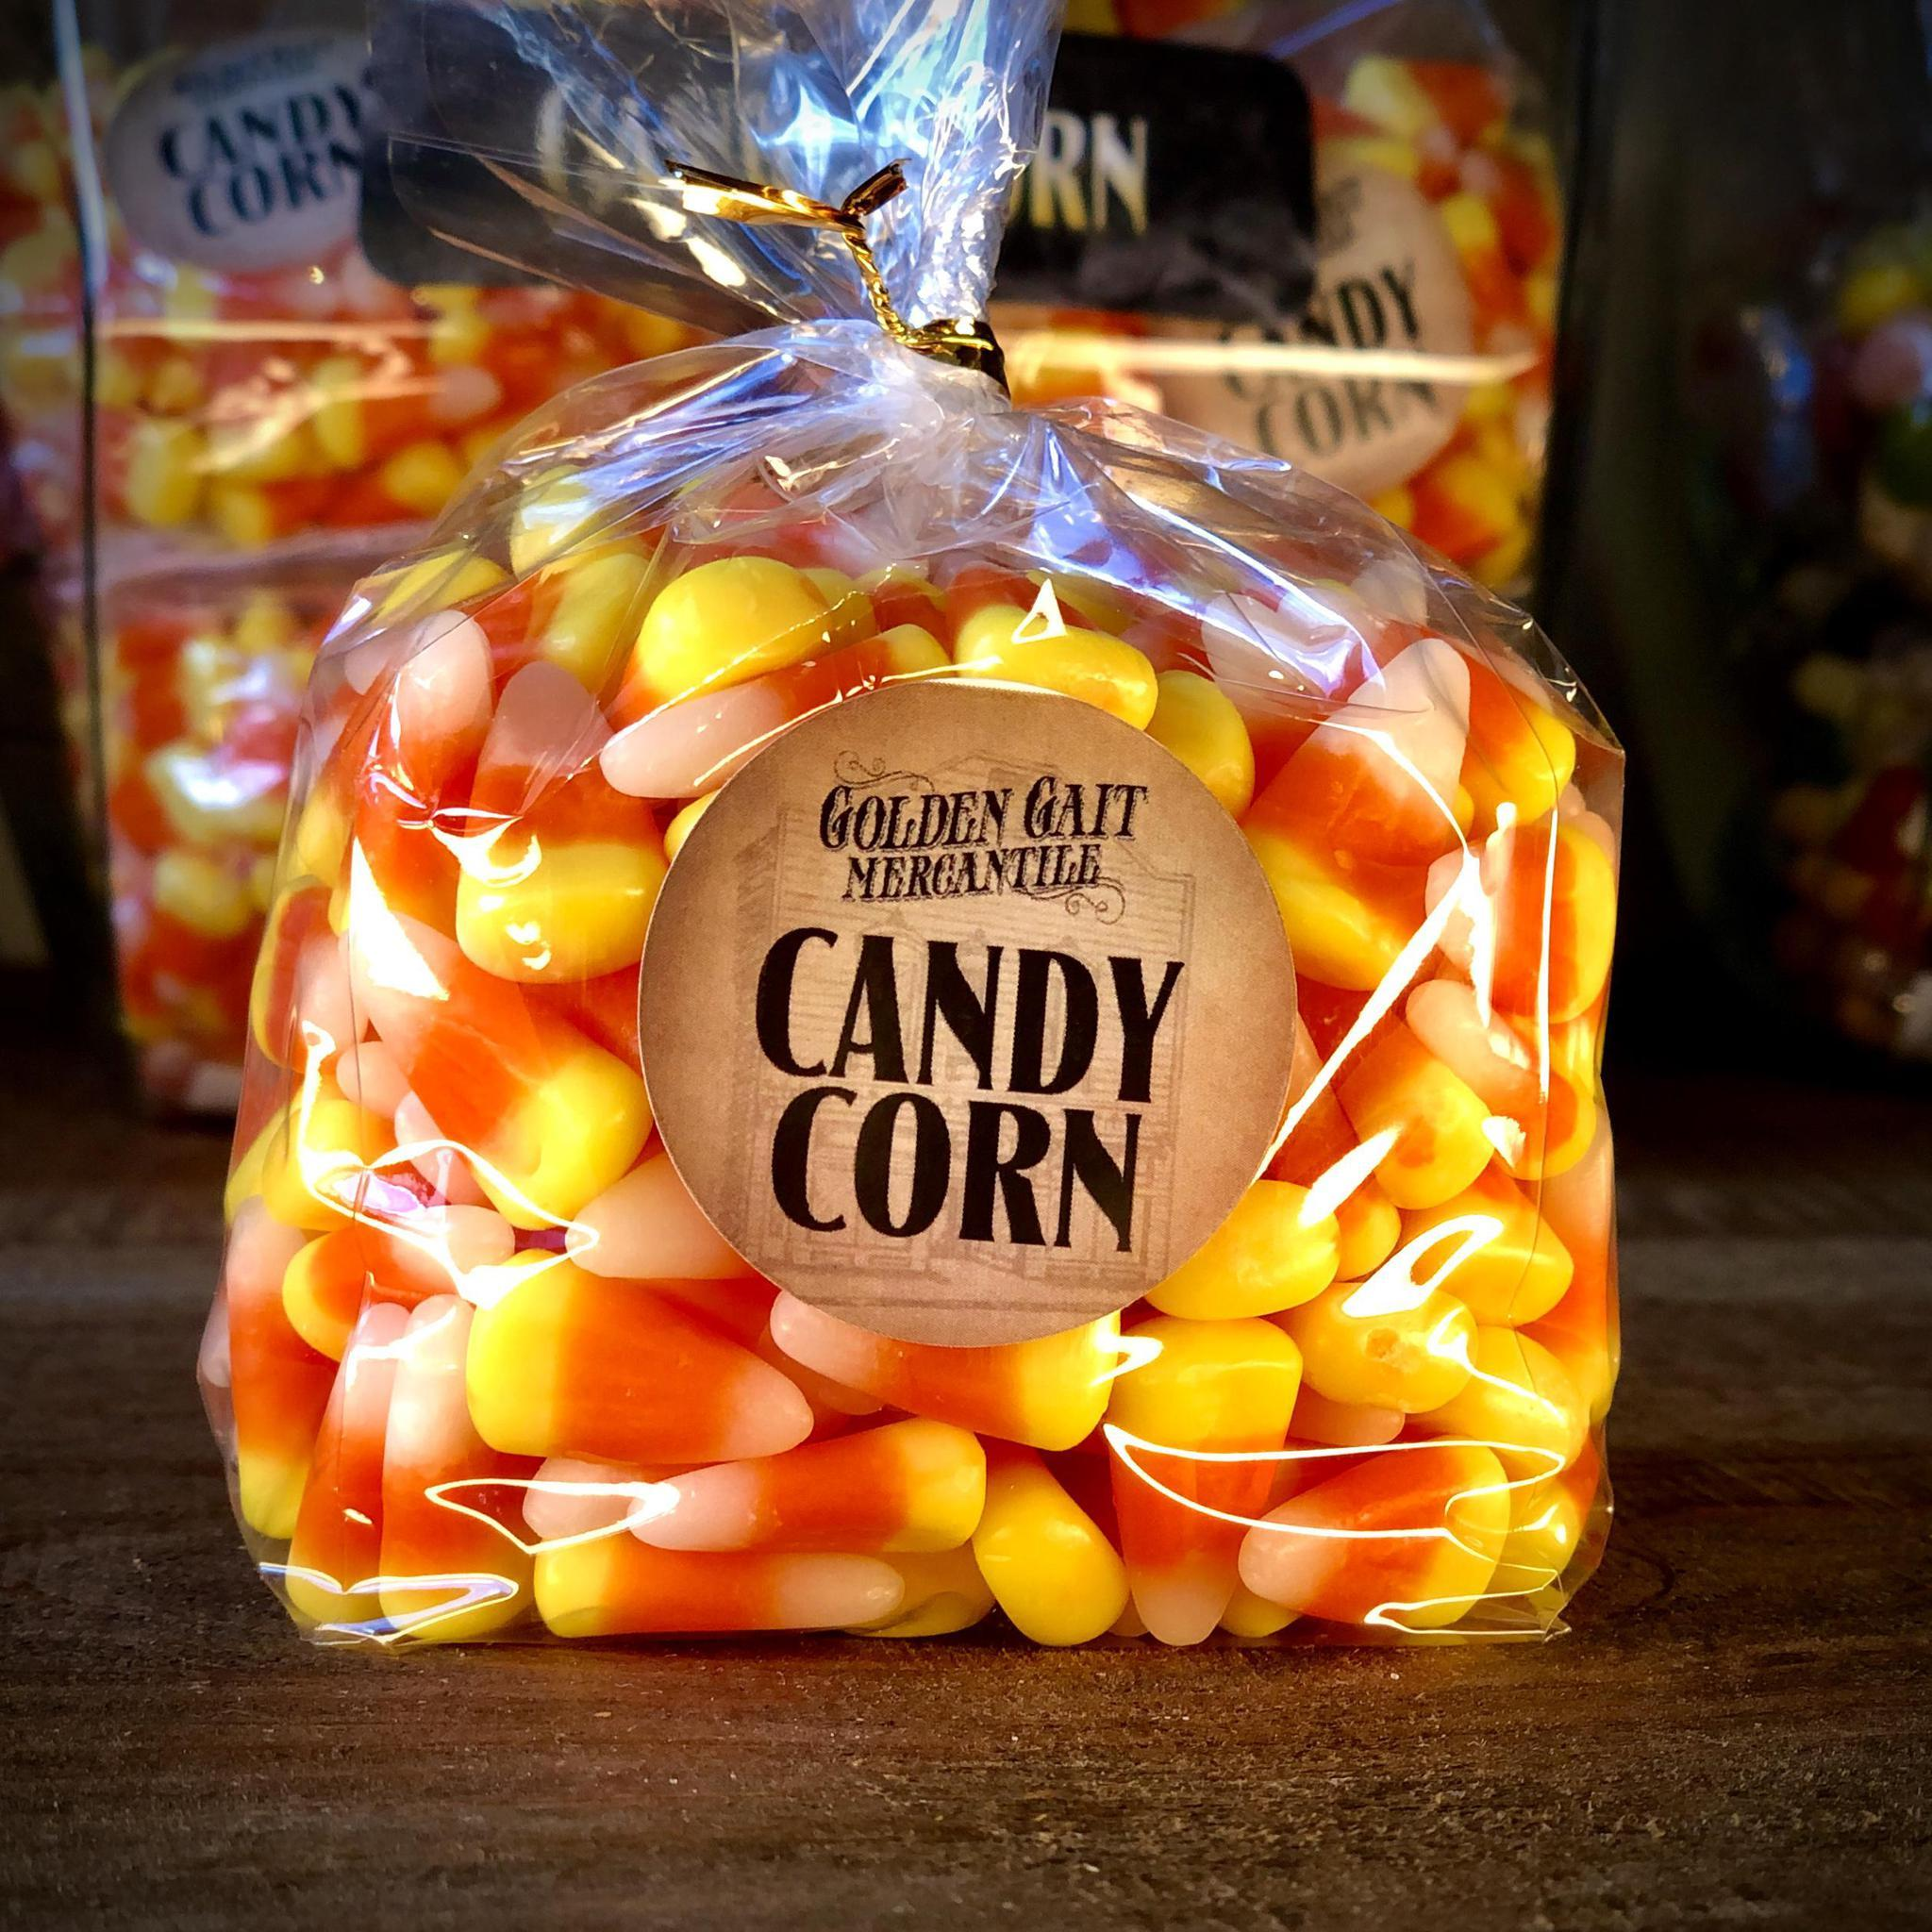 Candy Corn By The Golden Gait Mercantile